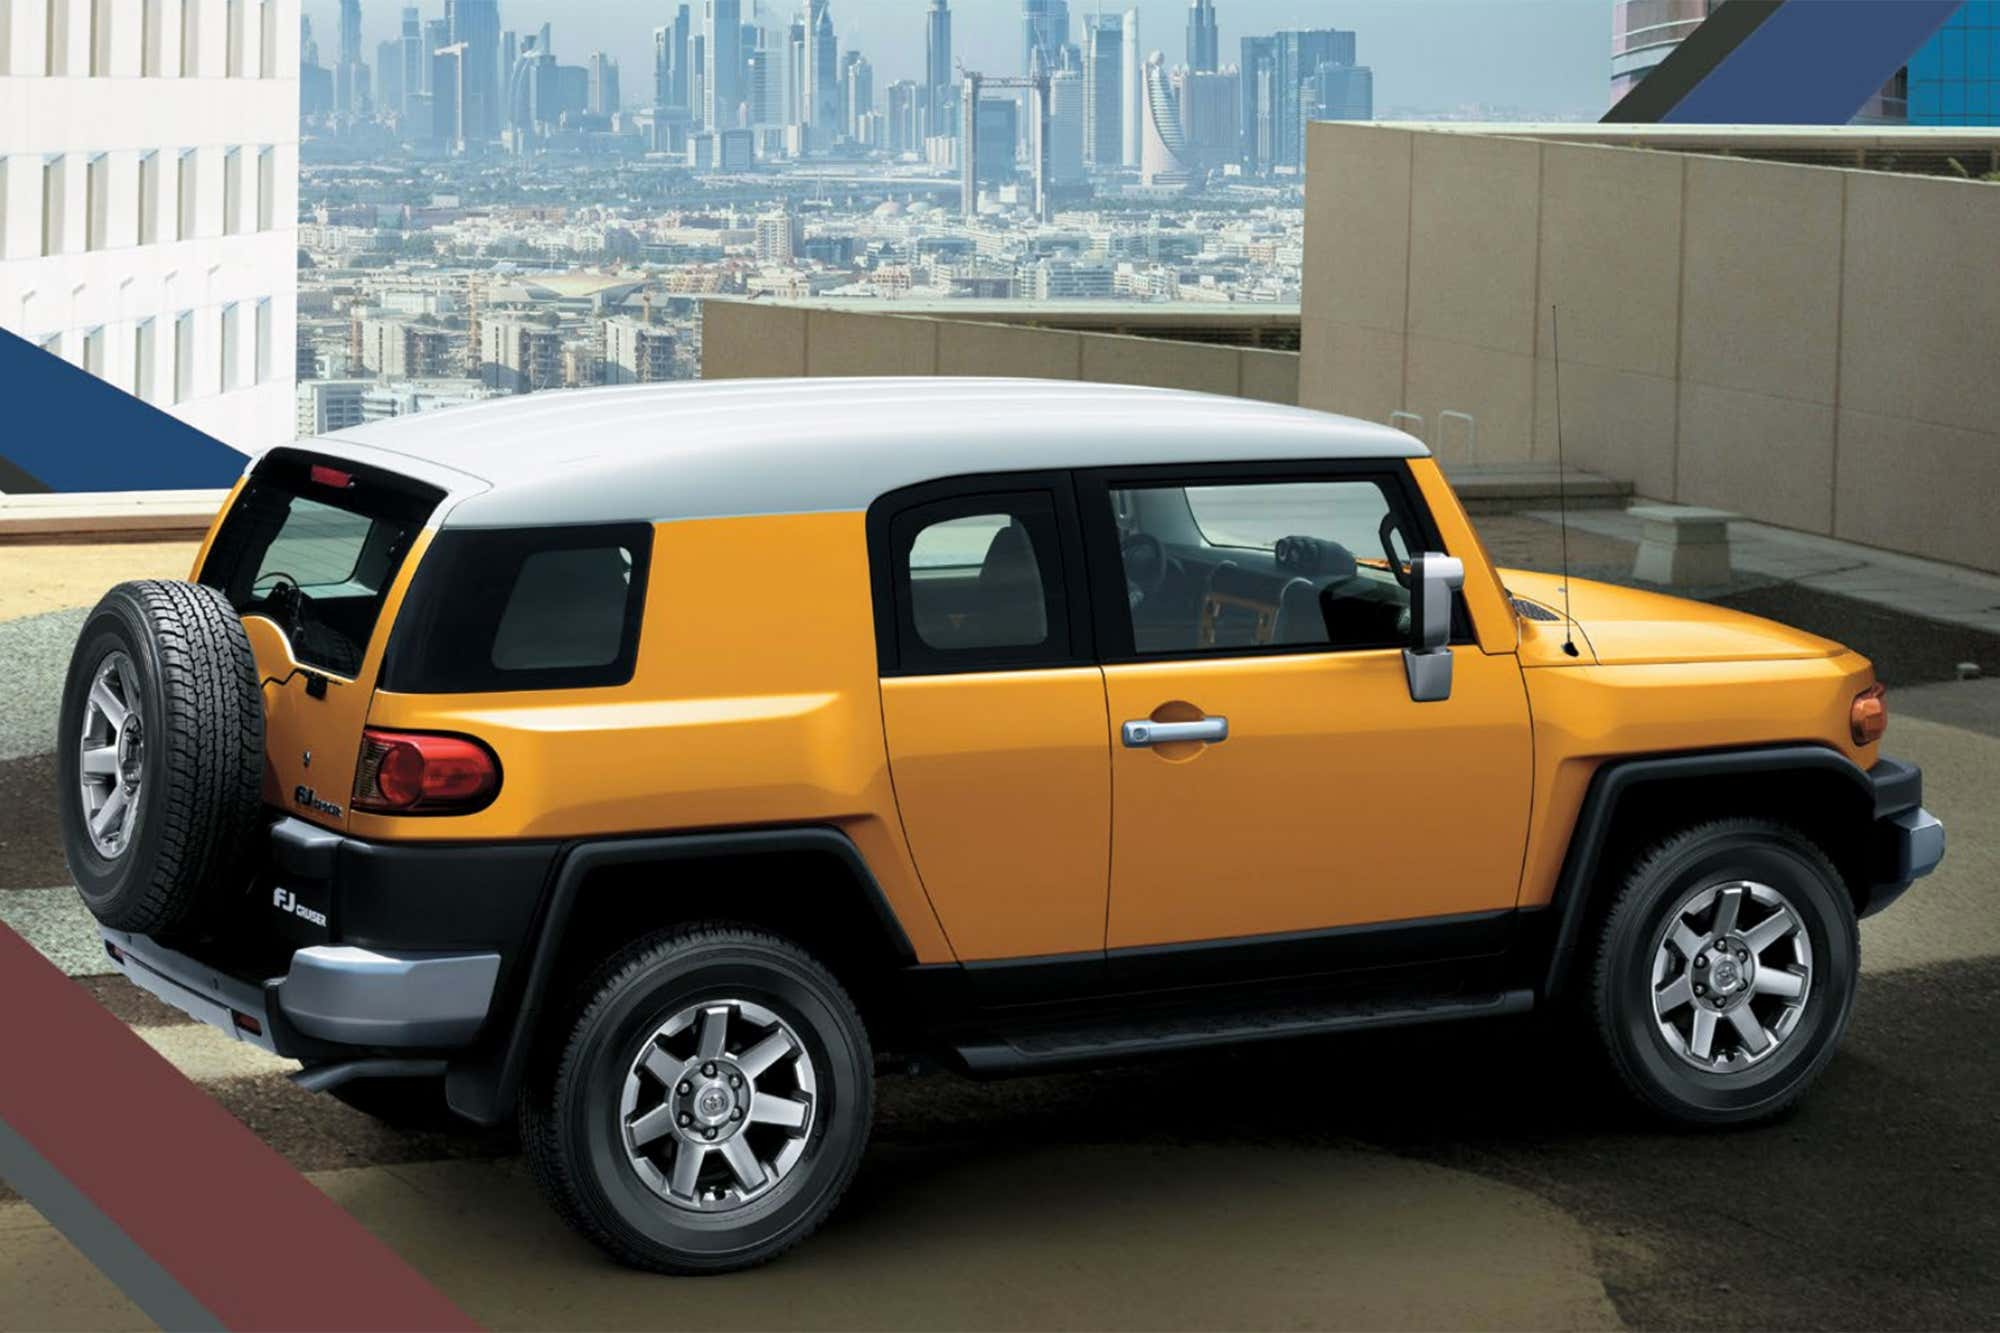 You Can Still Buy A Brand New Toyota Fj Cruiser In The Middle East For 40k